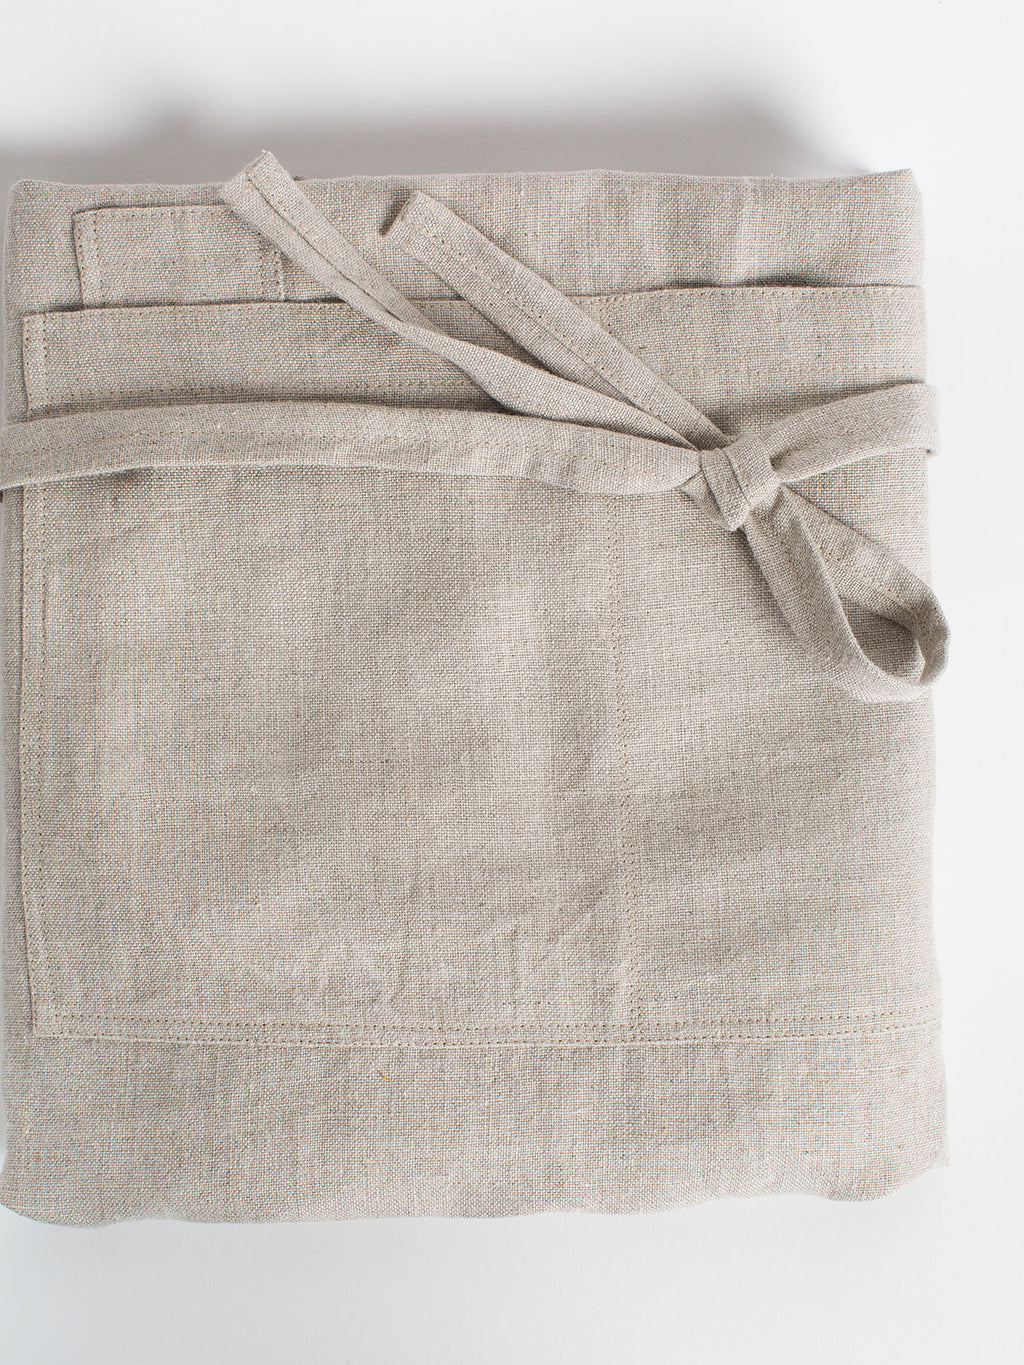 Adjustable Linen Apron